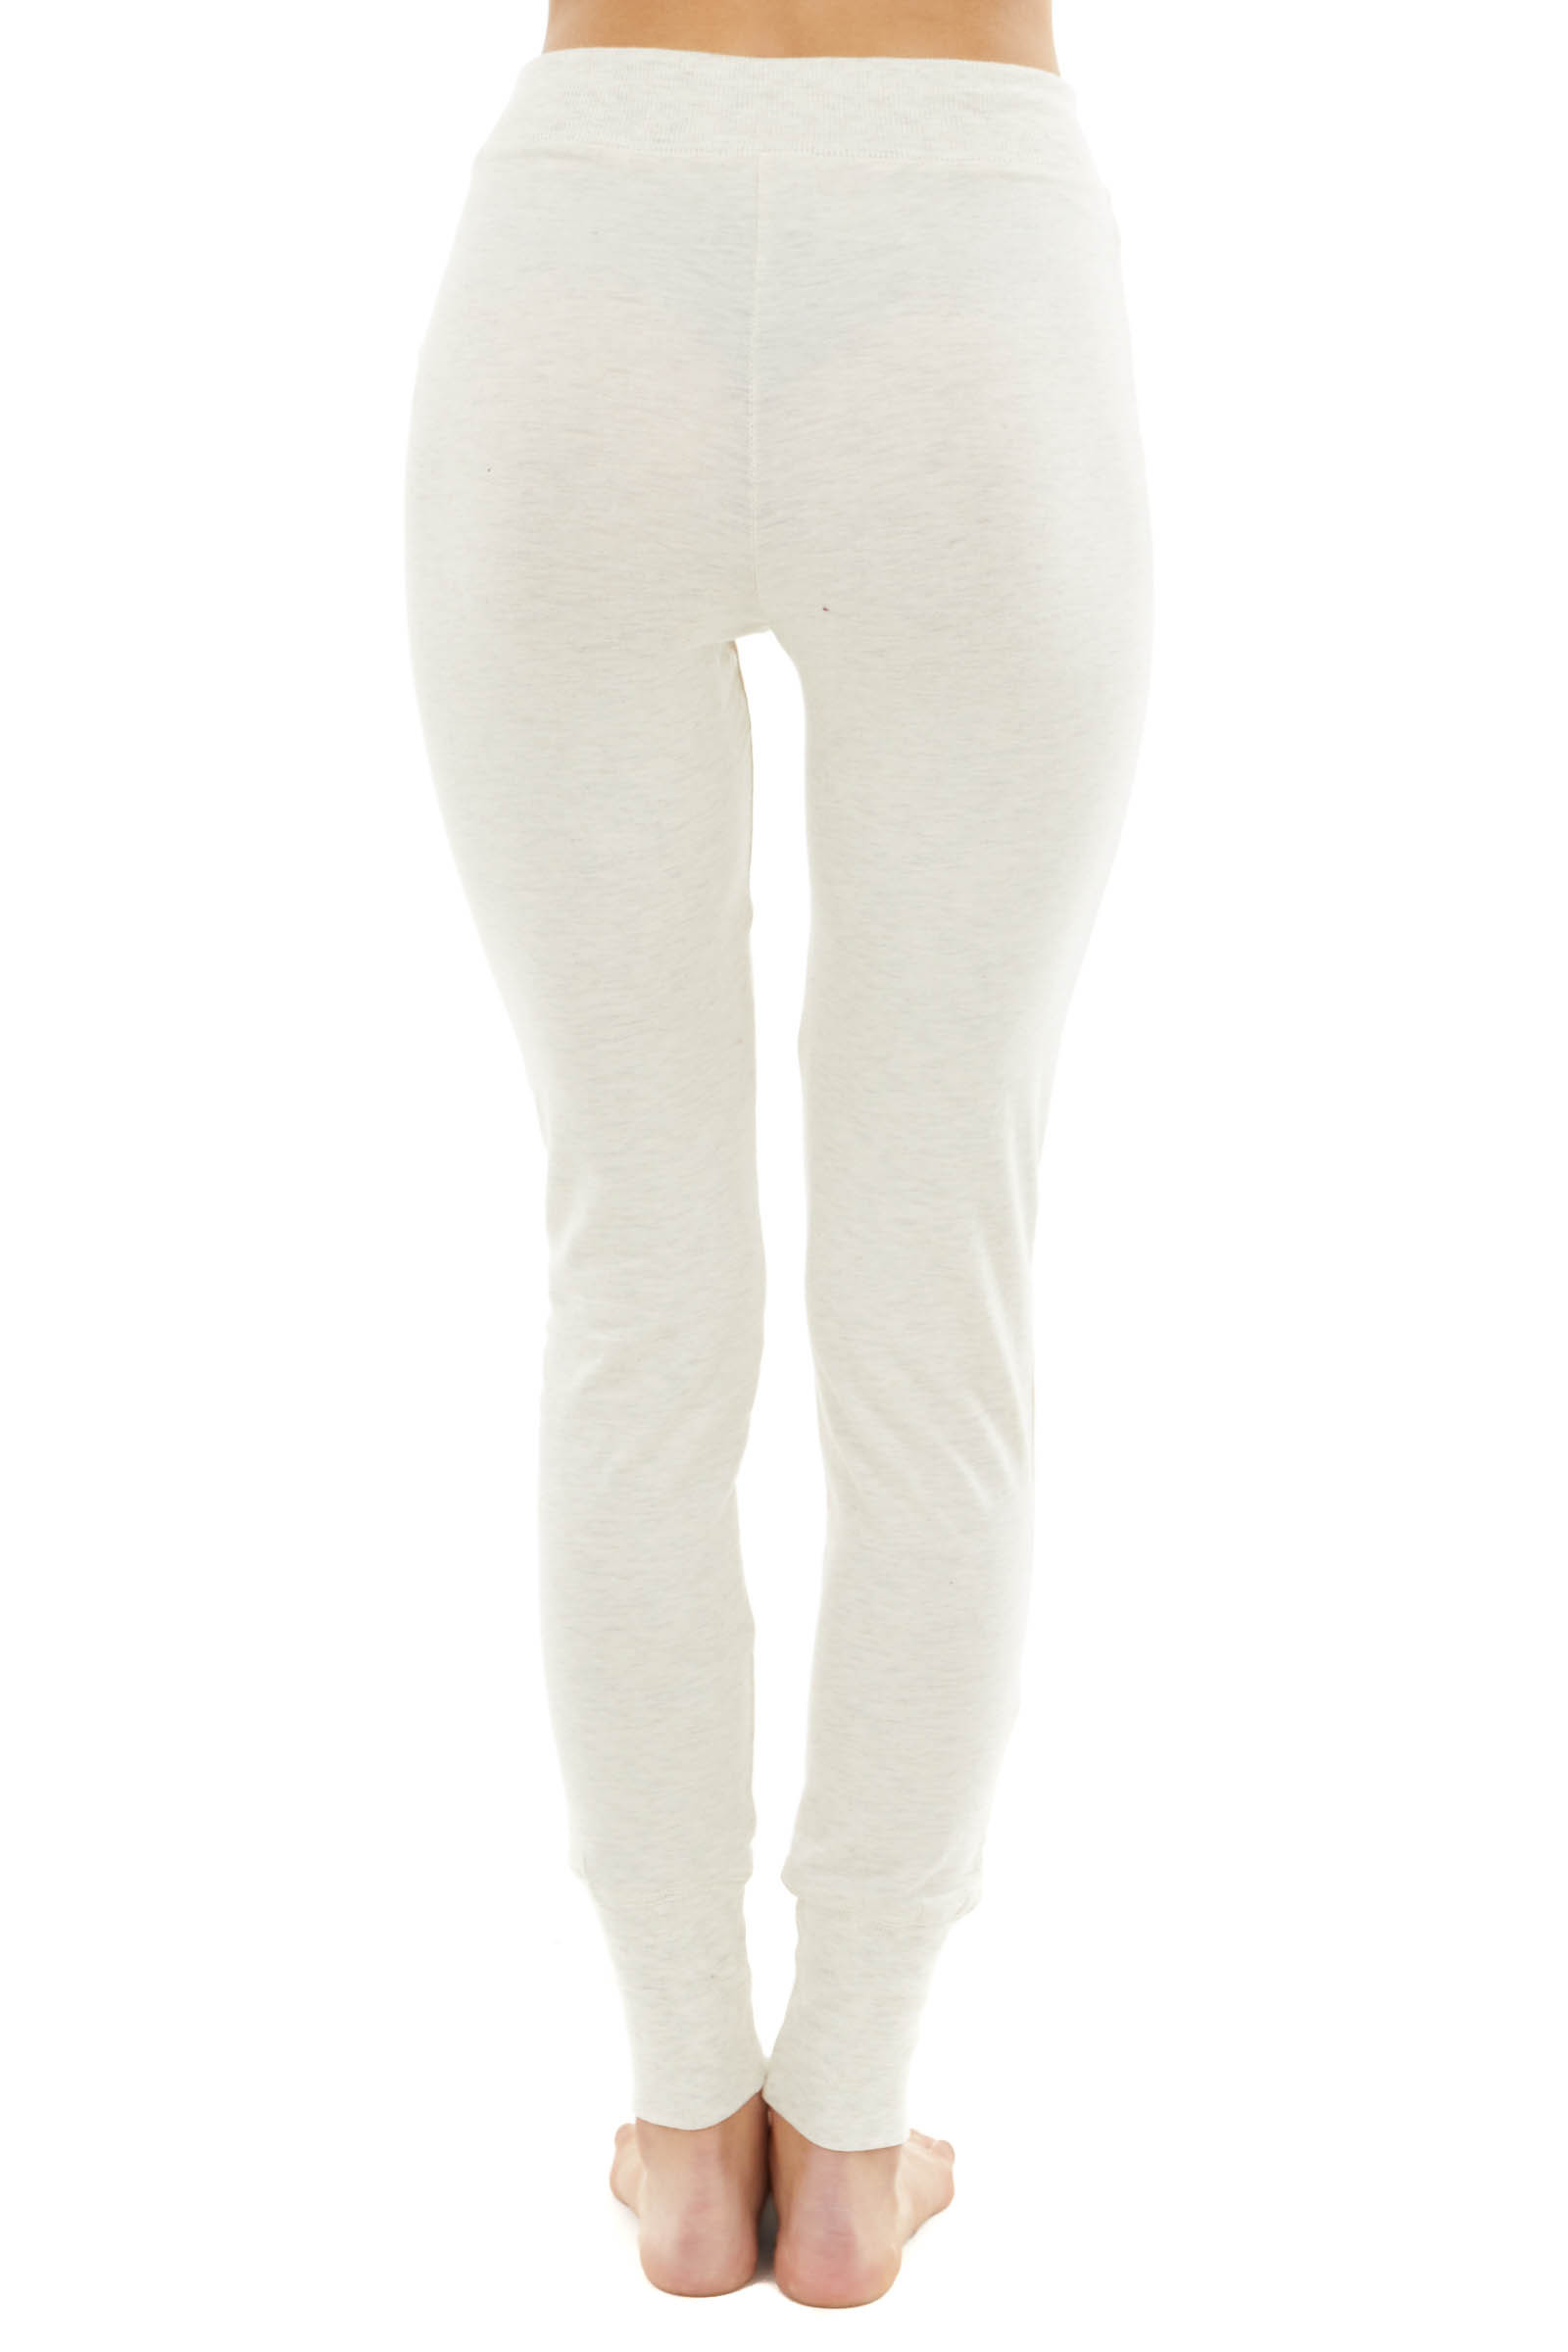 Heathered Oatmeal Stretchy Knit Lightweight Fitted Joggers